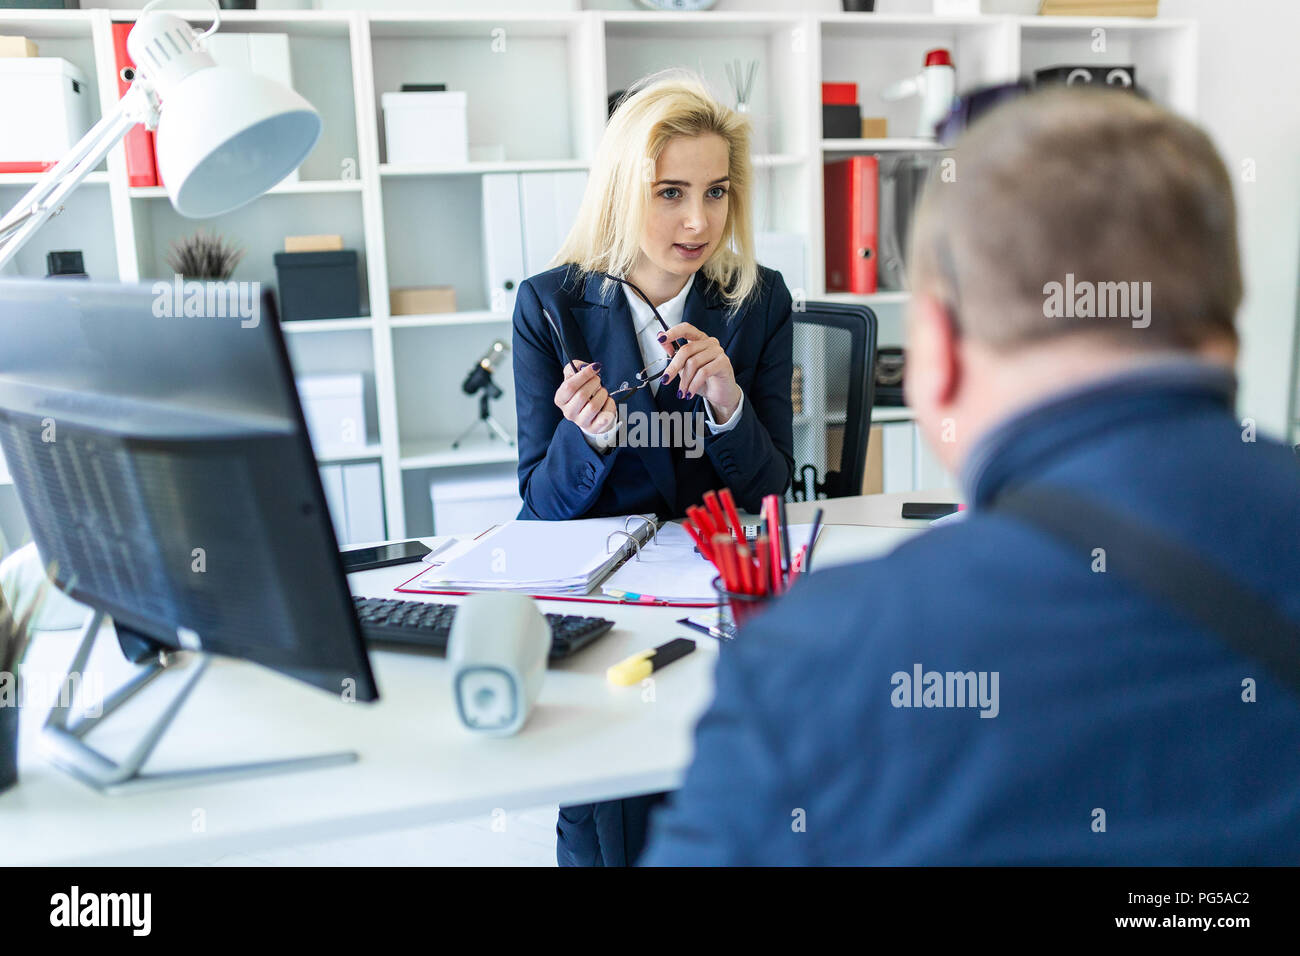 A young girl is sitting at a table in the office, holding glasses in her hand and talking to a man. - Stock Image